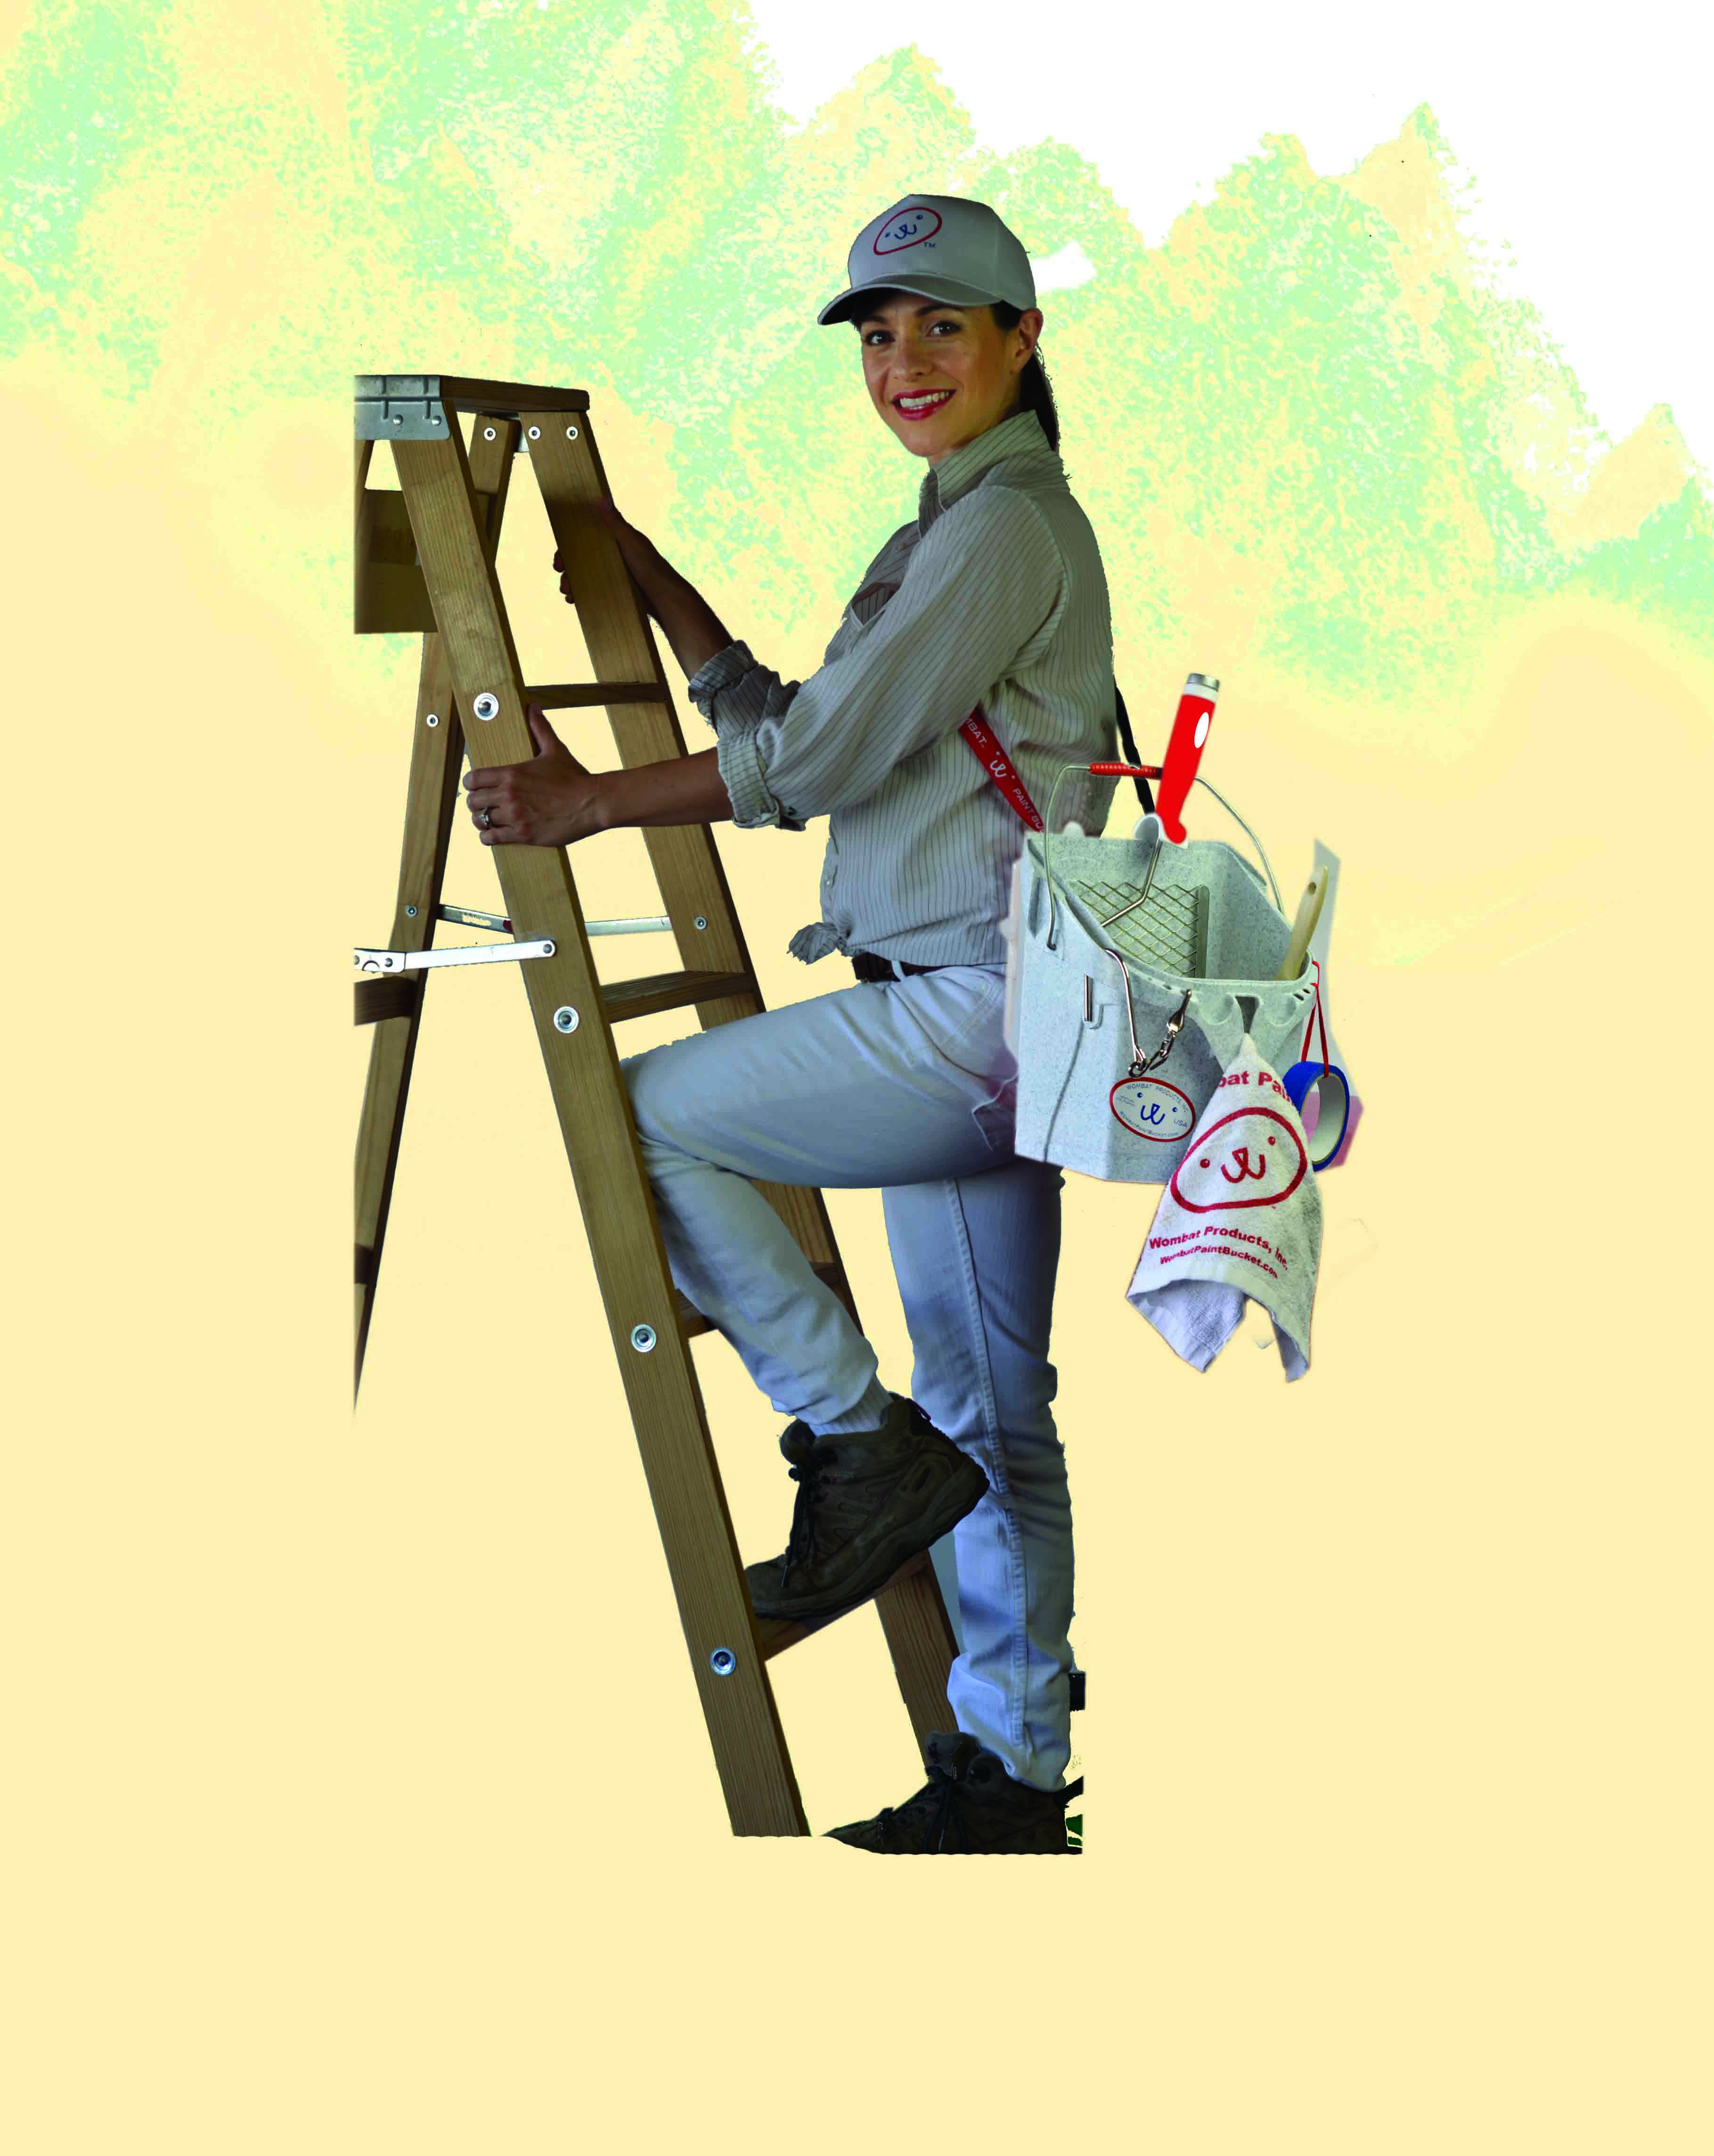 Climb ladder safely using both hands